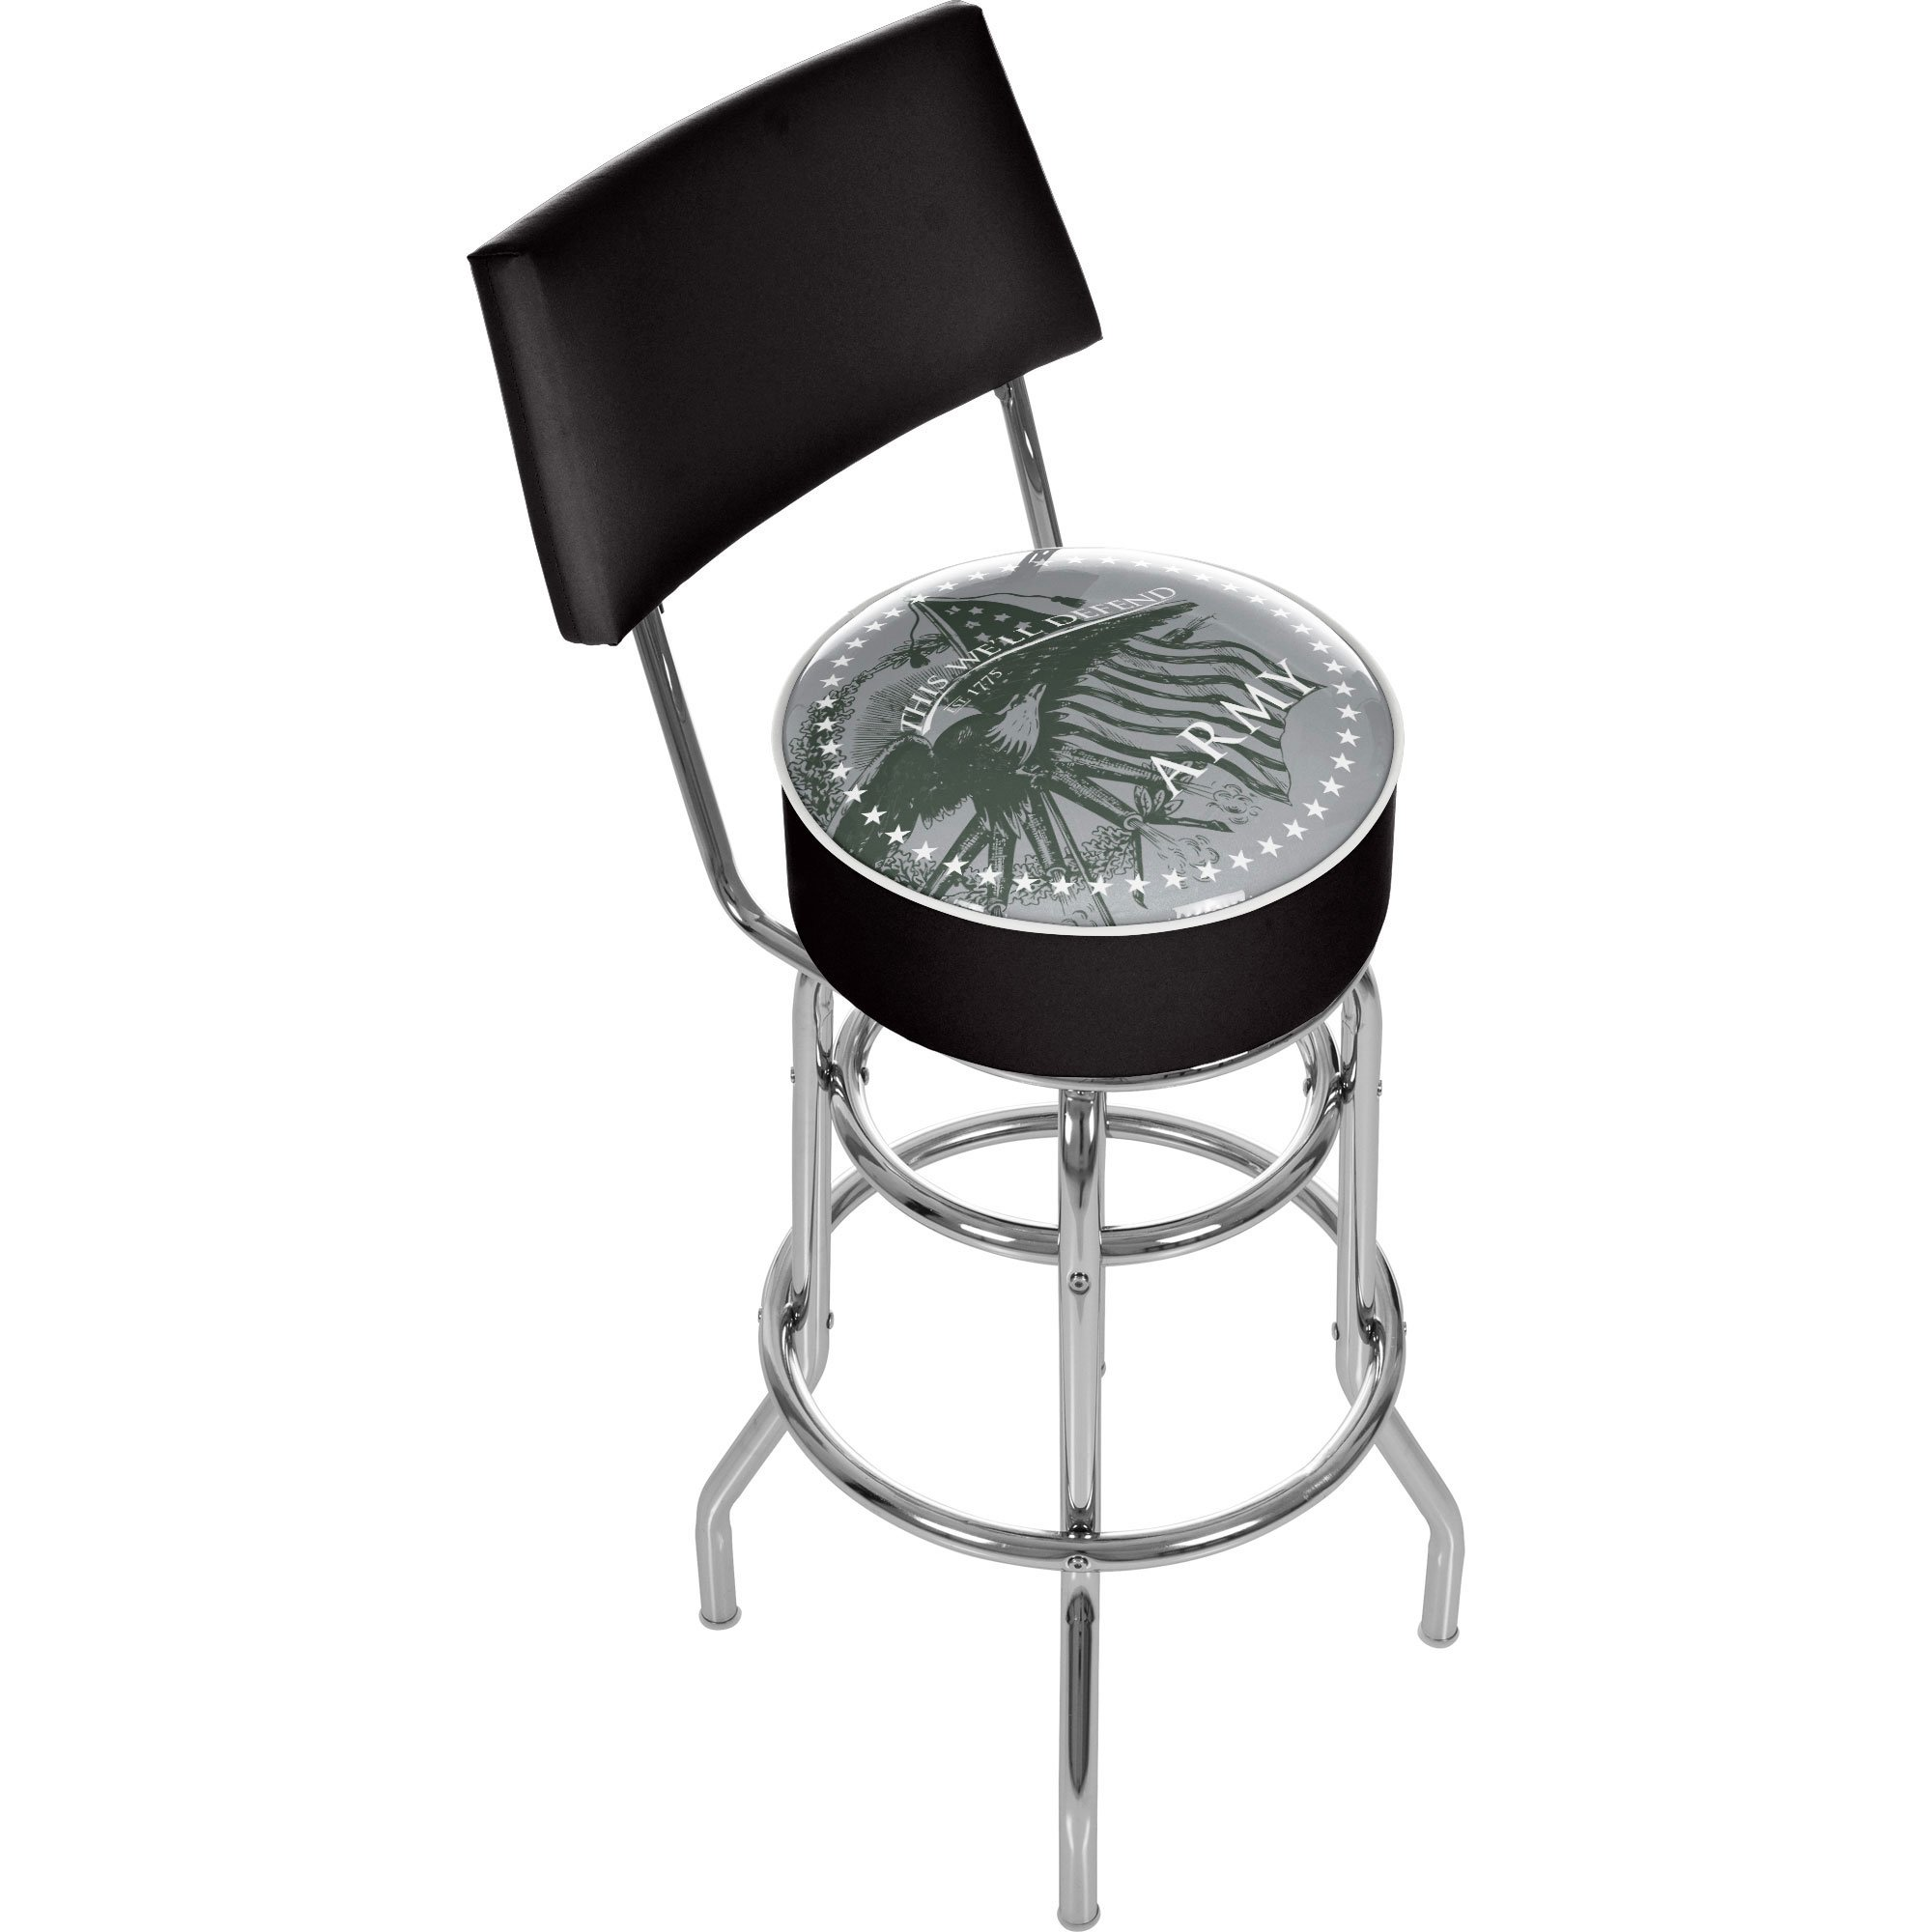 United States Army ''This We'll Defend'' Padded Swivel Bar Stool with Back